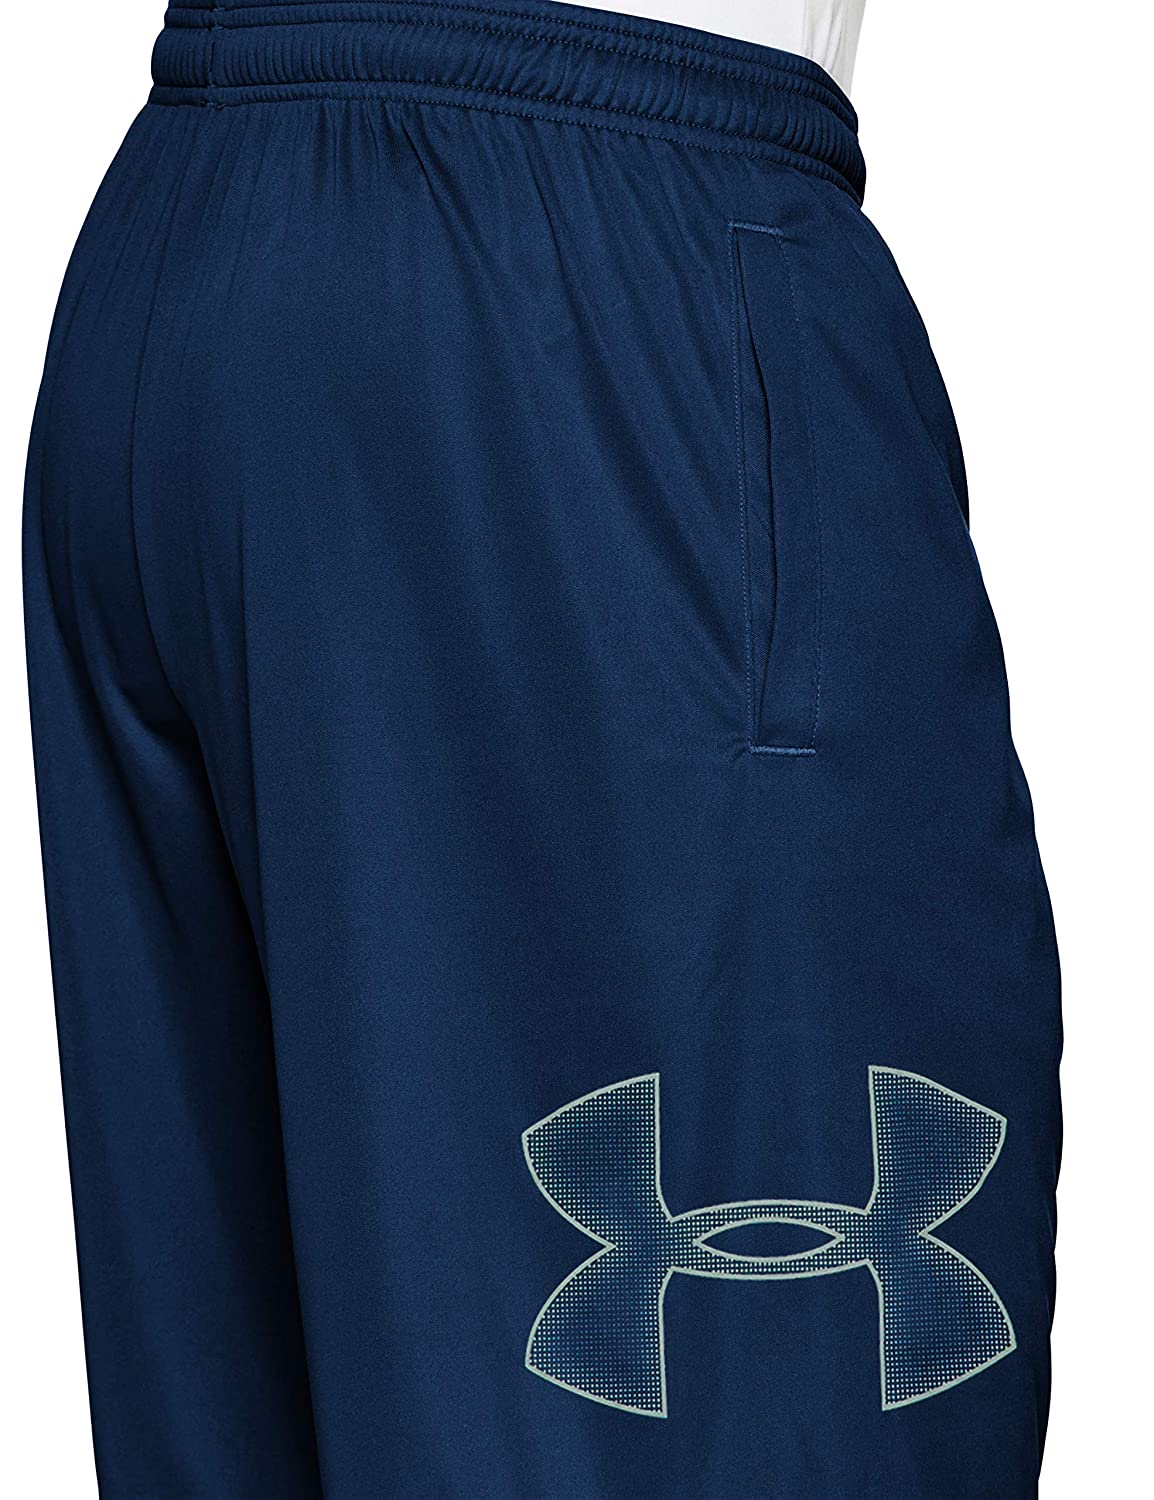 Under Armour Mens Ua Tech Graphic Short